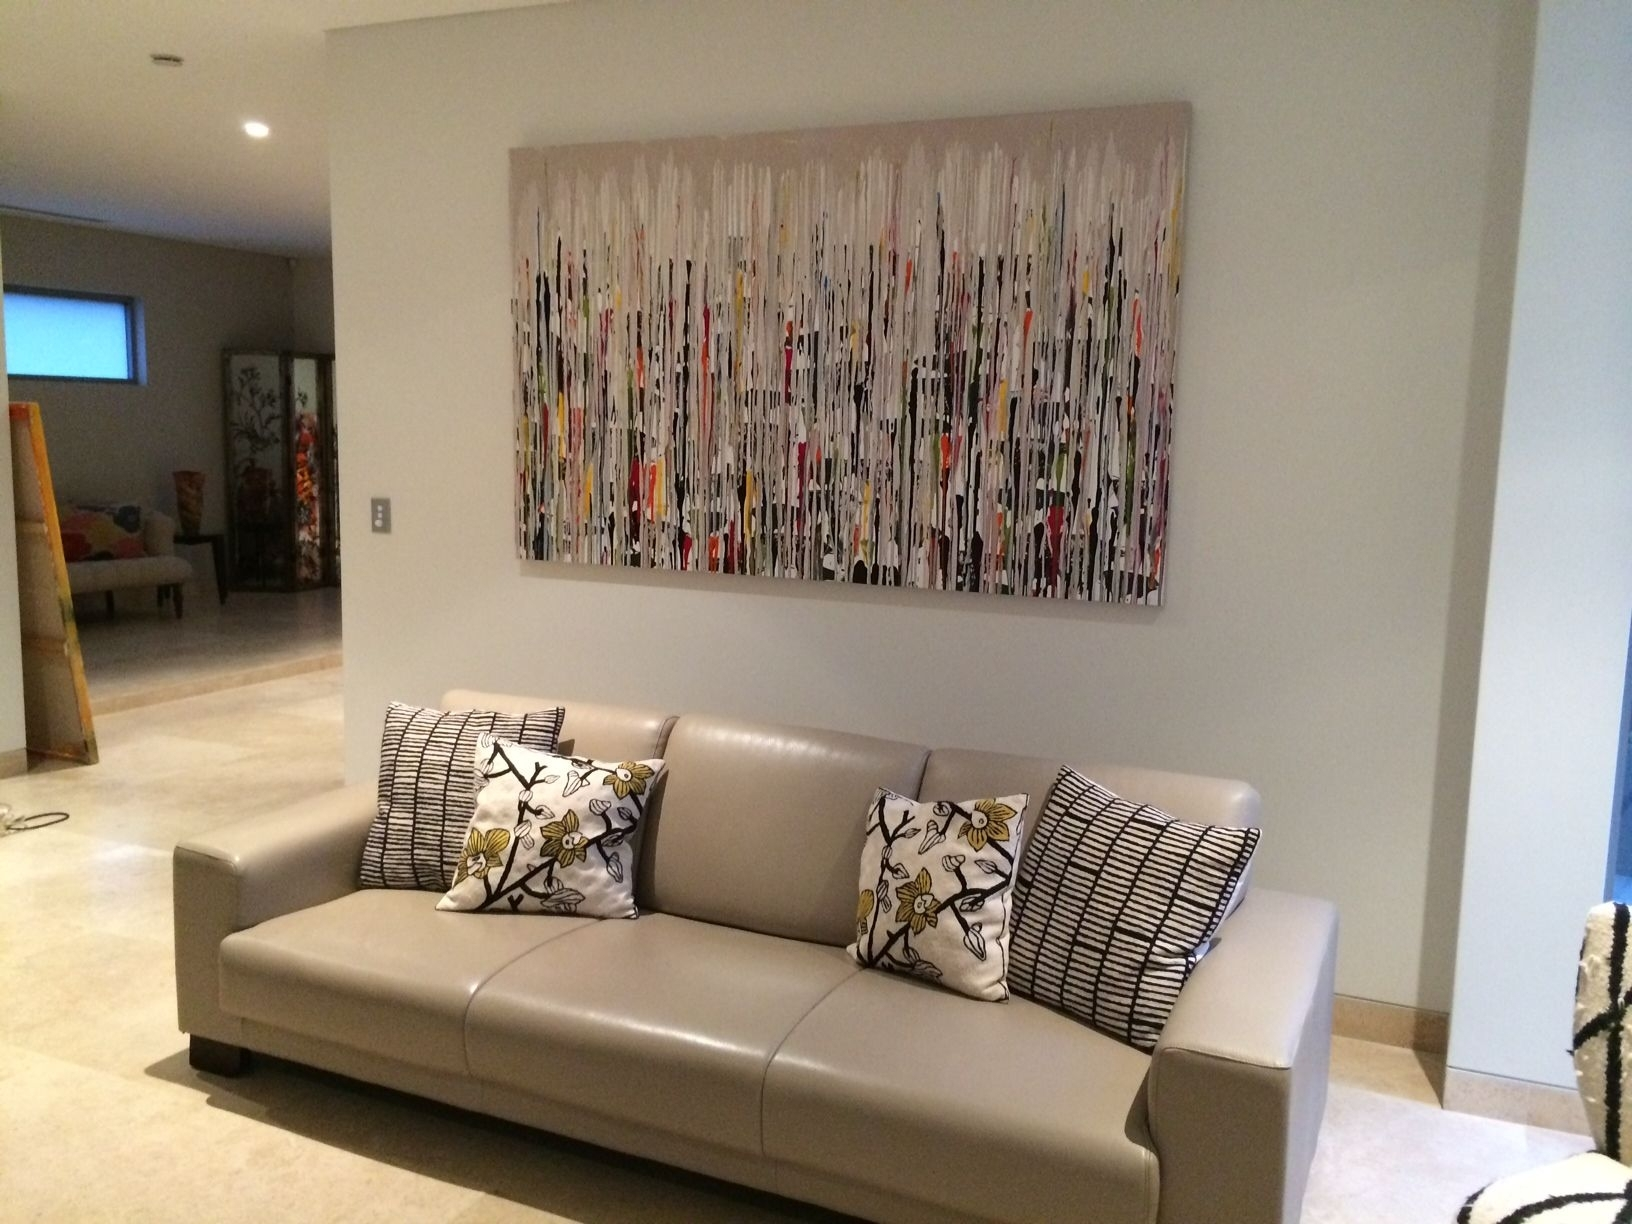 Abstract Art Gallery Sydney   Home Decor   Interior Design With Regard To Newest Neutral Abstract Wall Art (View 3 of 20)